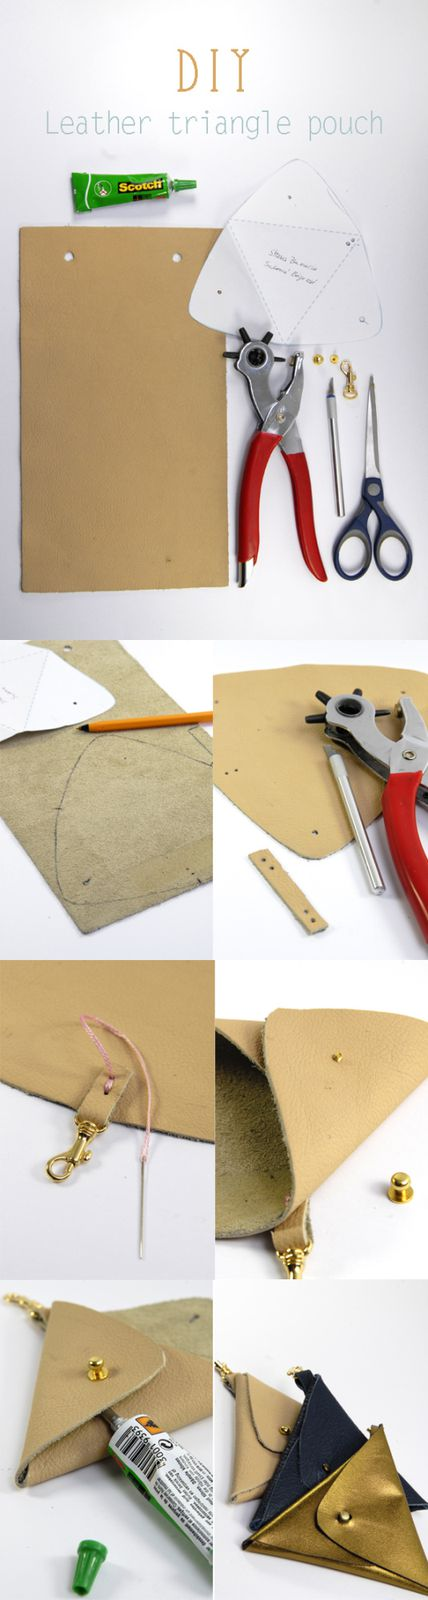 DIY-tuto-leather-triangle-pouch-1.jpg